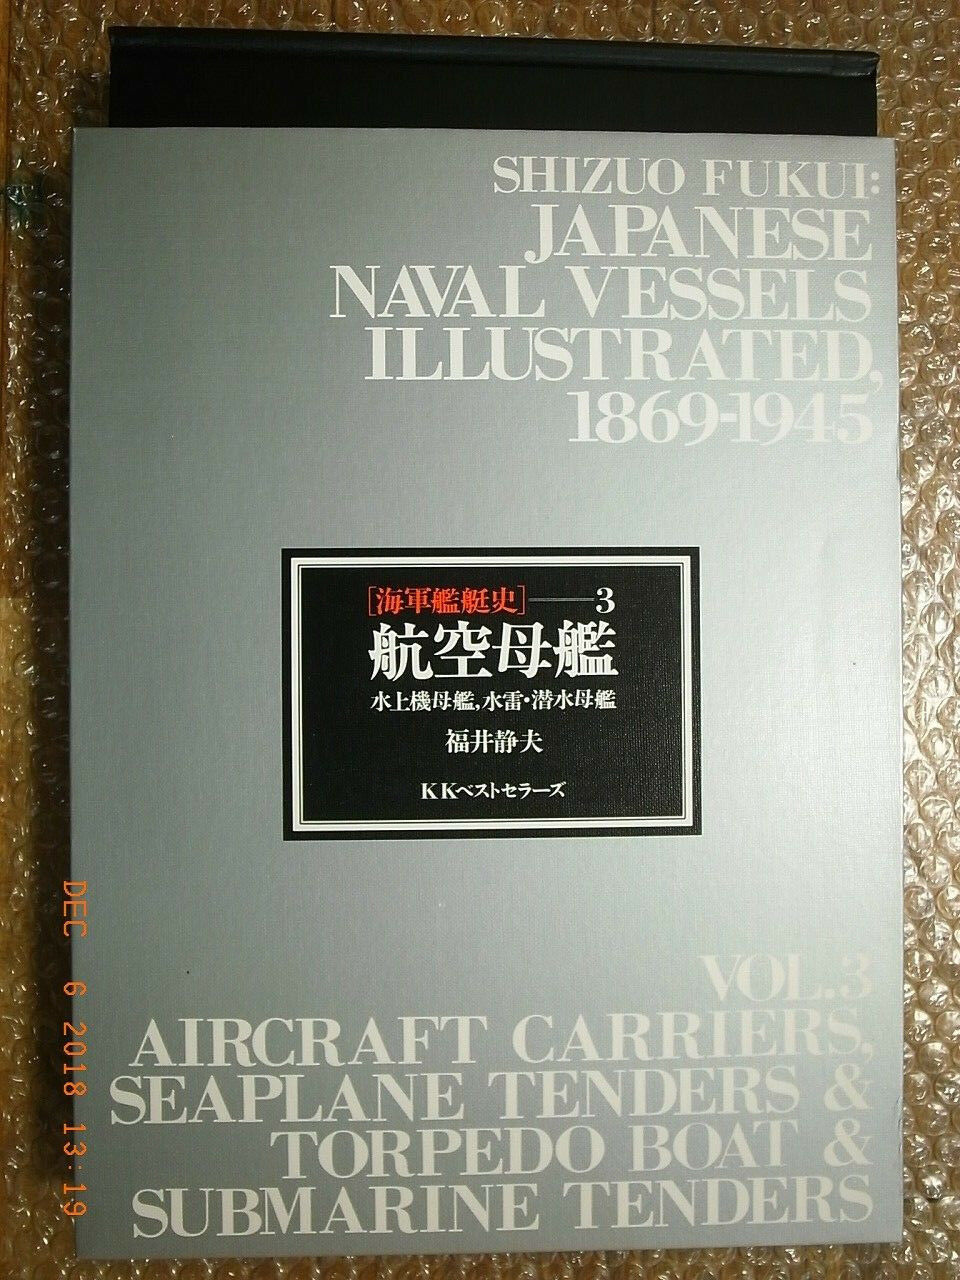 JAPANESE NAVAL VESSELS ILLUSTRATED 1869-1945 AIRCRAFT CARRIERS, SHIZUO FUKUI